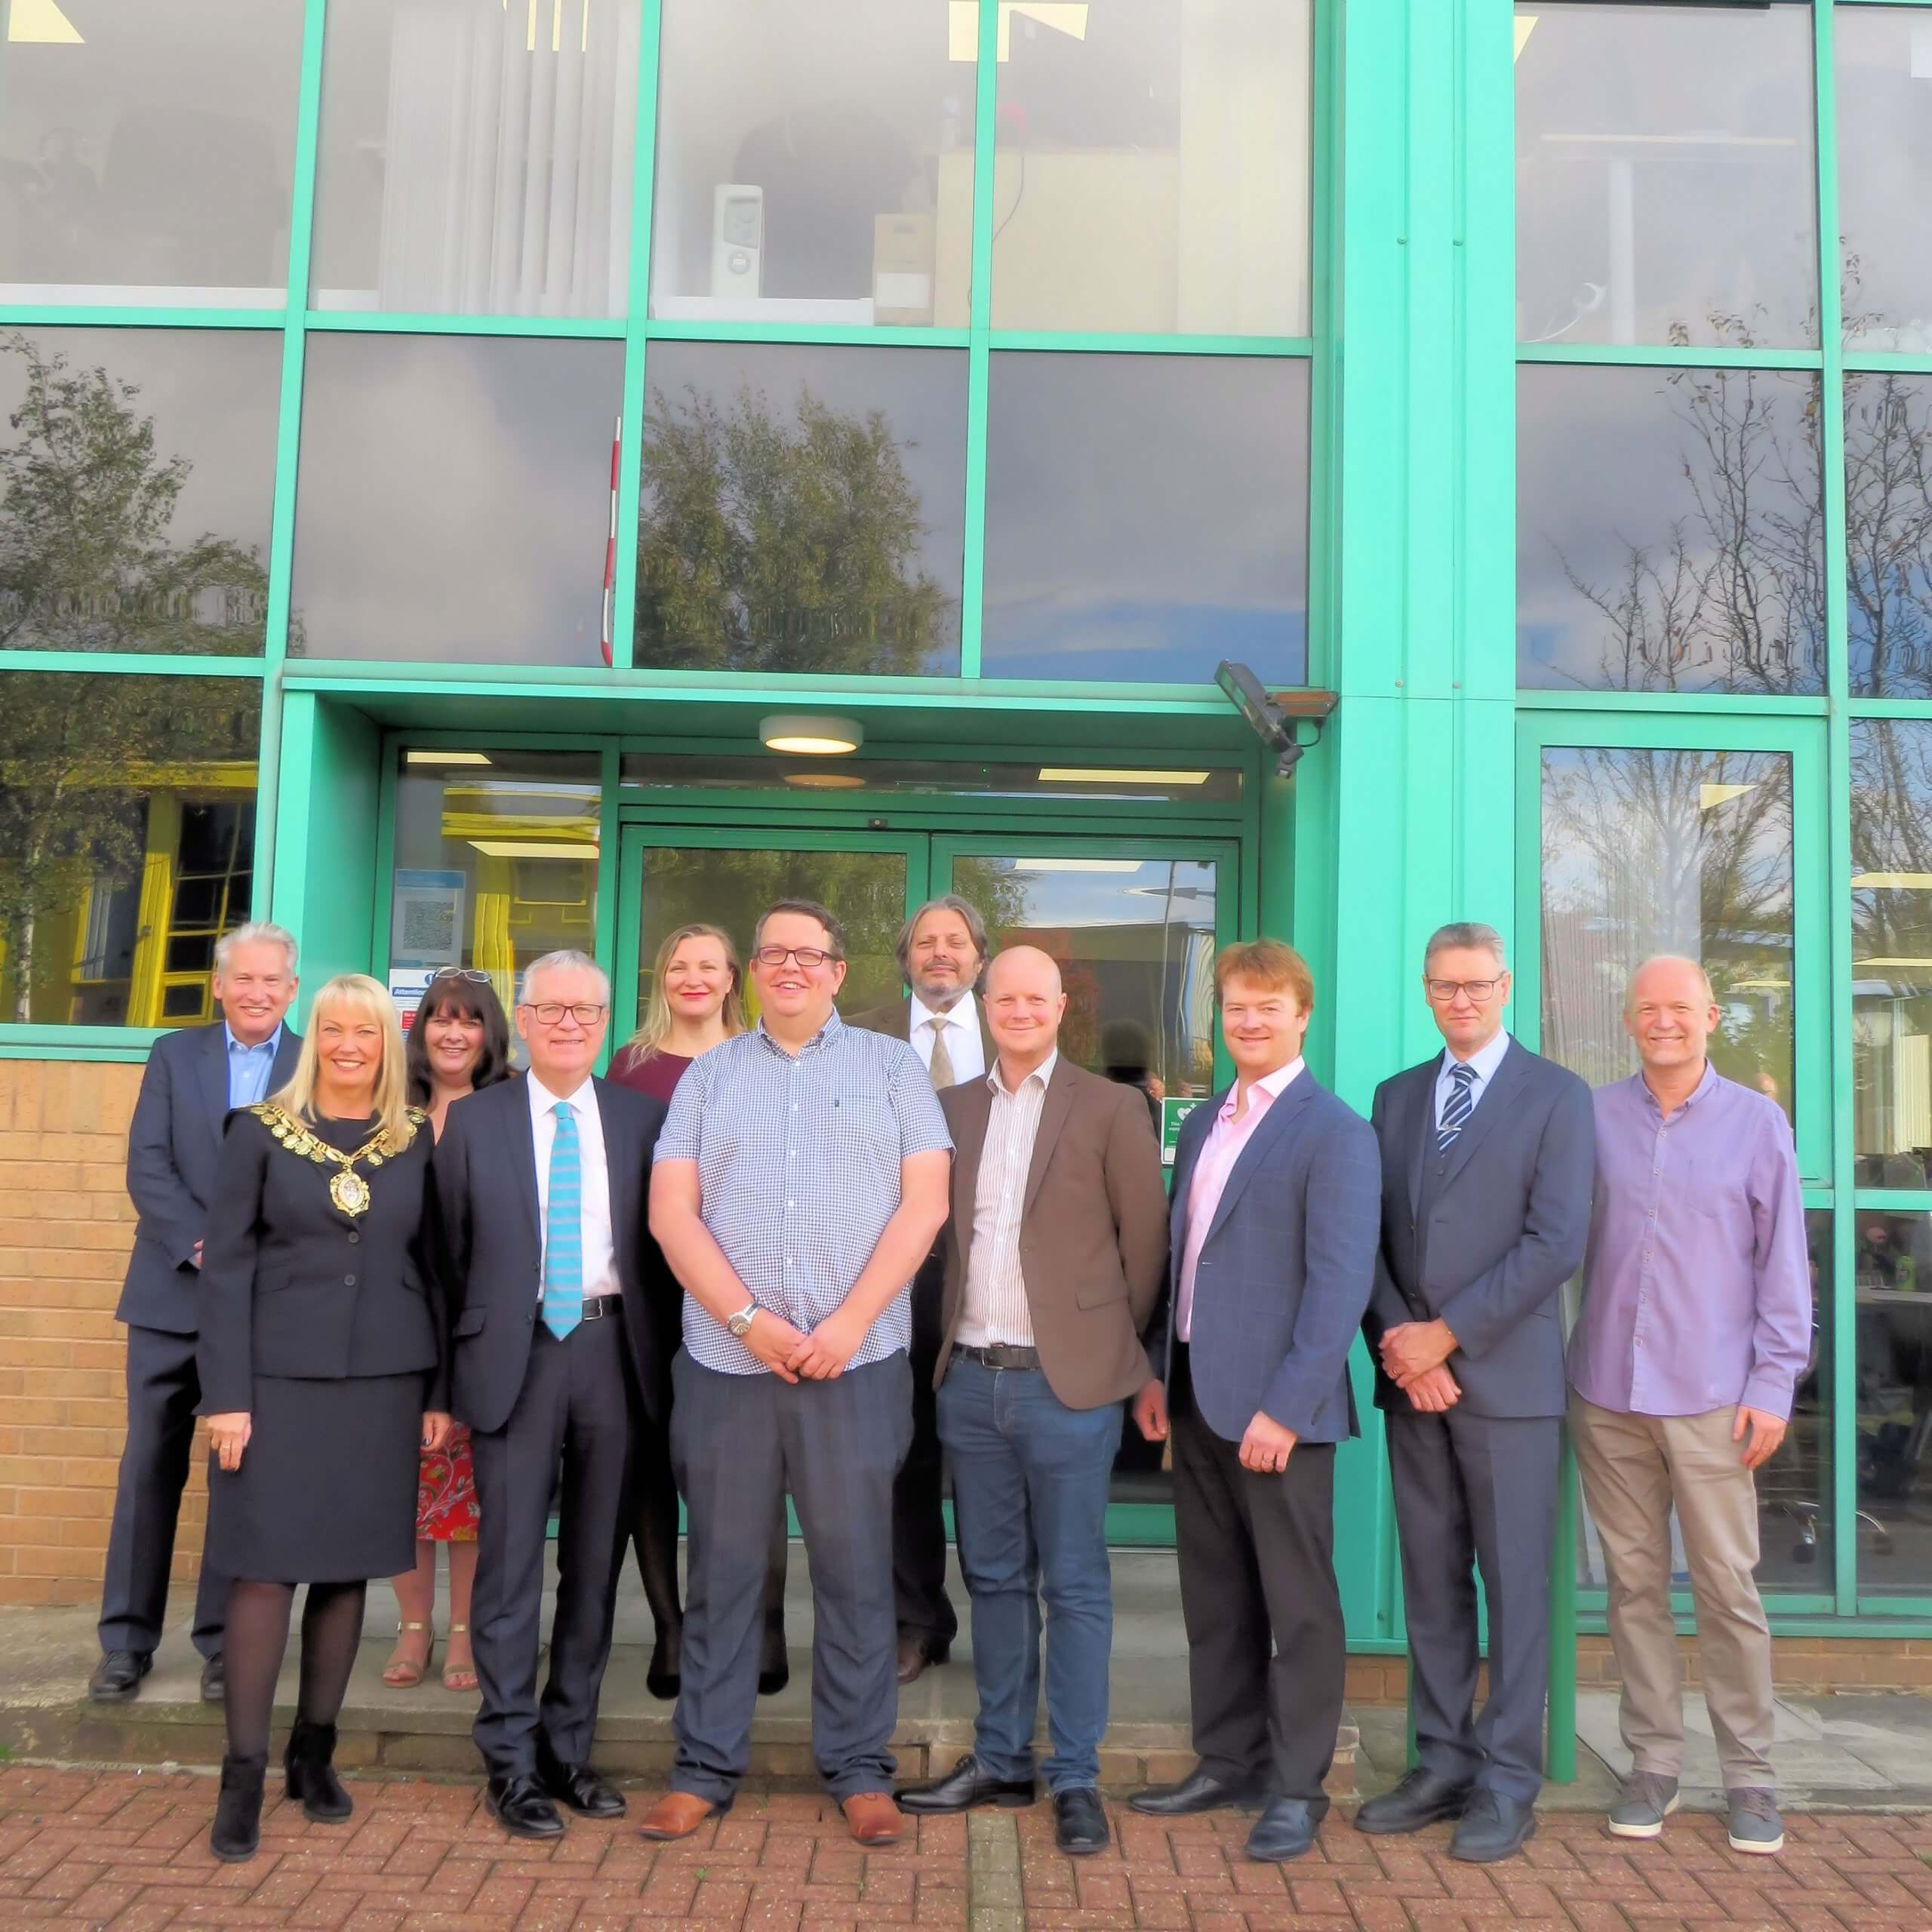 Specialist manufacturing firm opens new office and creates jobs in Barnsley